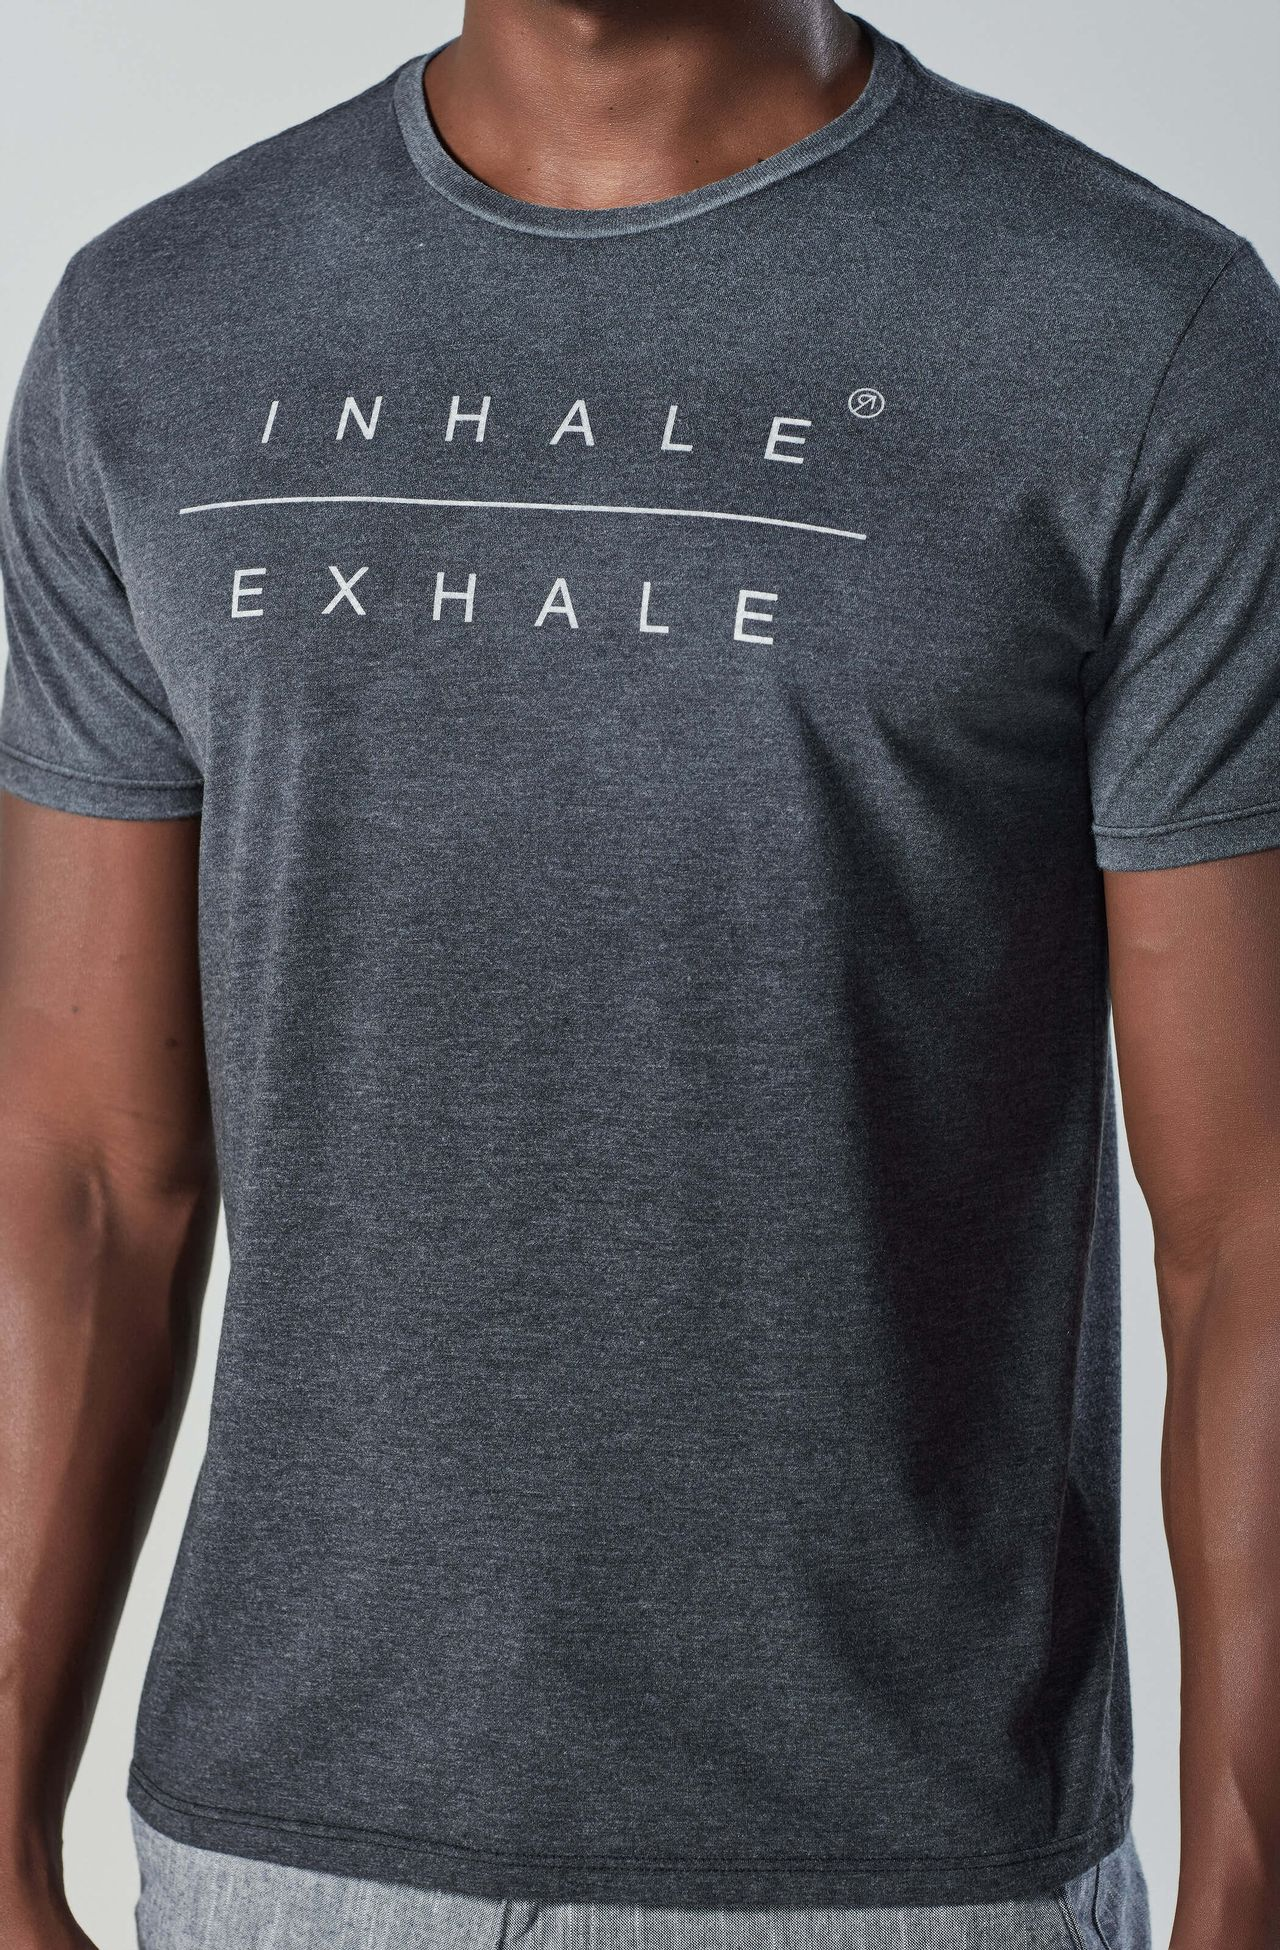 8353CCZ00029_985_3-TSHIRT-MC-INHALE-EXHALE